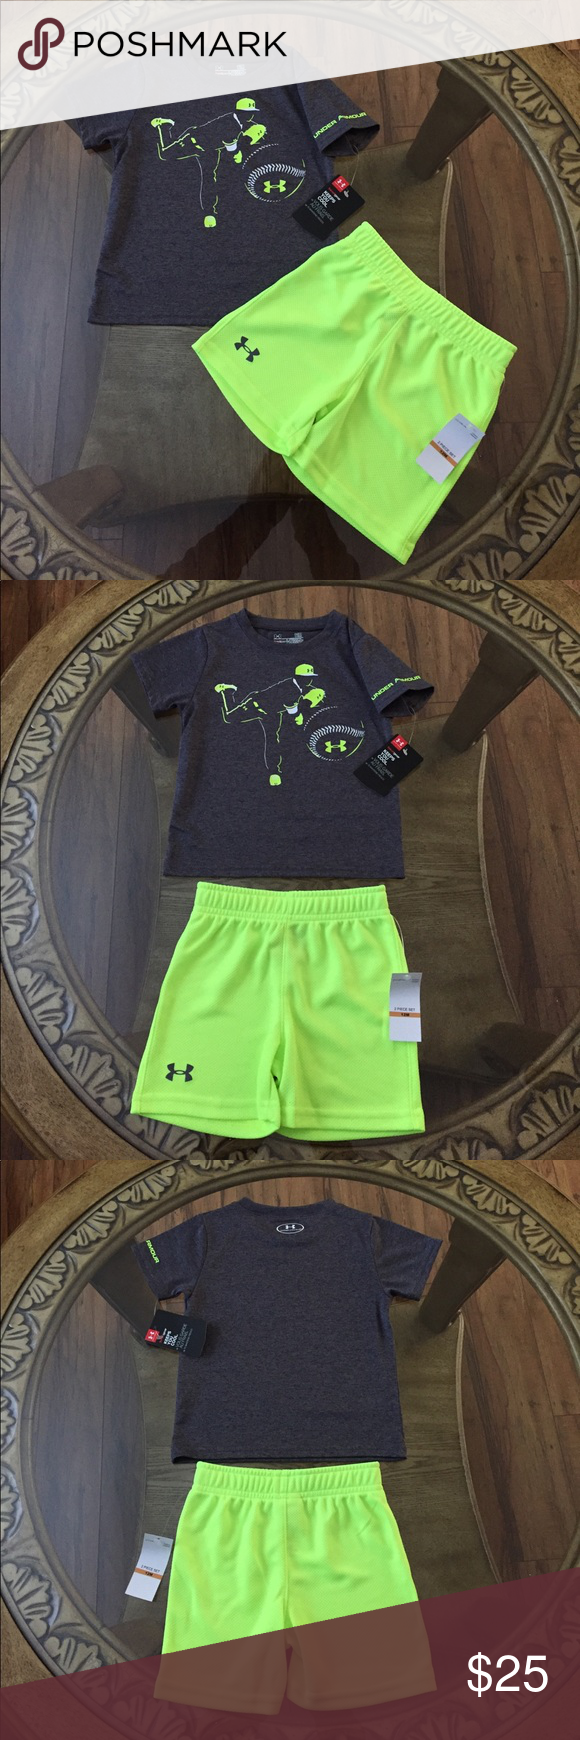 UNDER ARMOUR (YL) GIRLS OUTFIT Brand New Under Armour Size